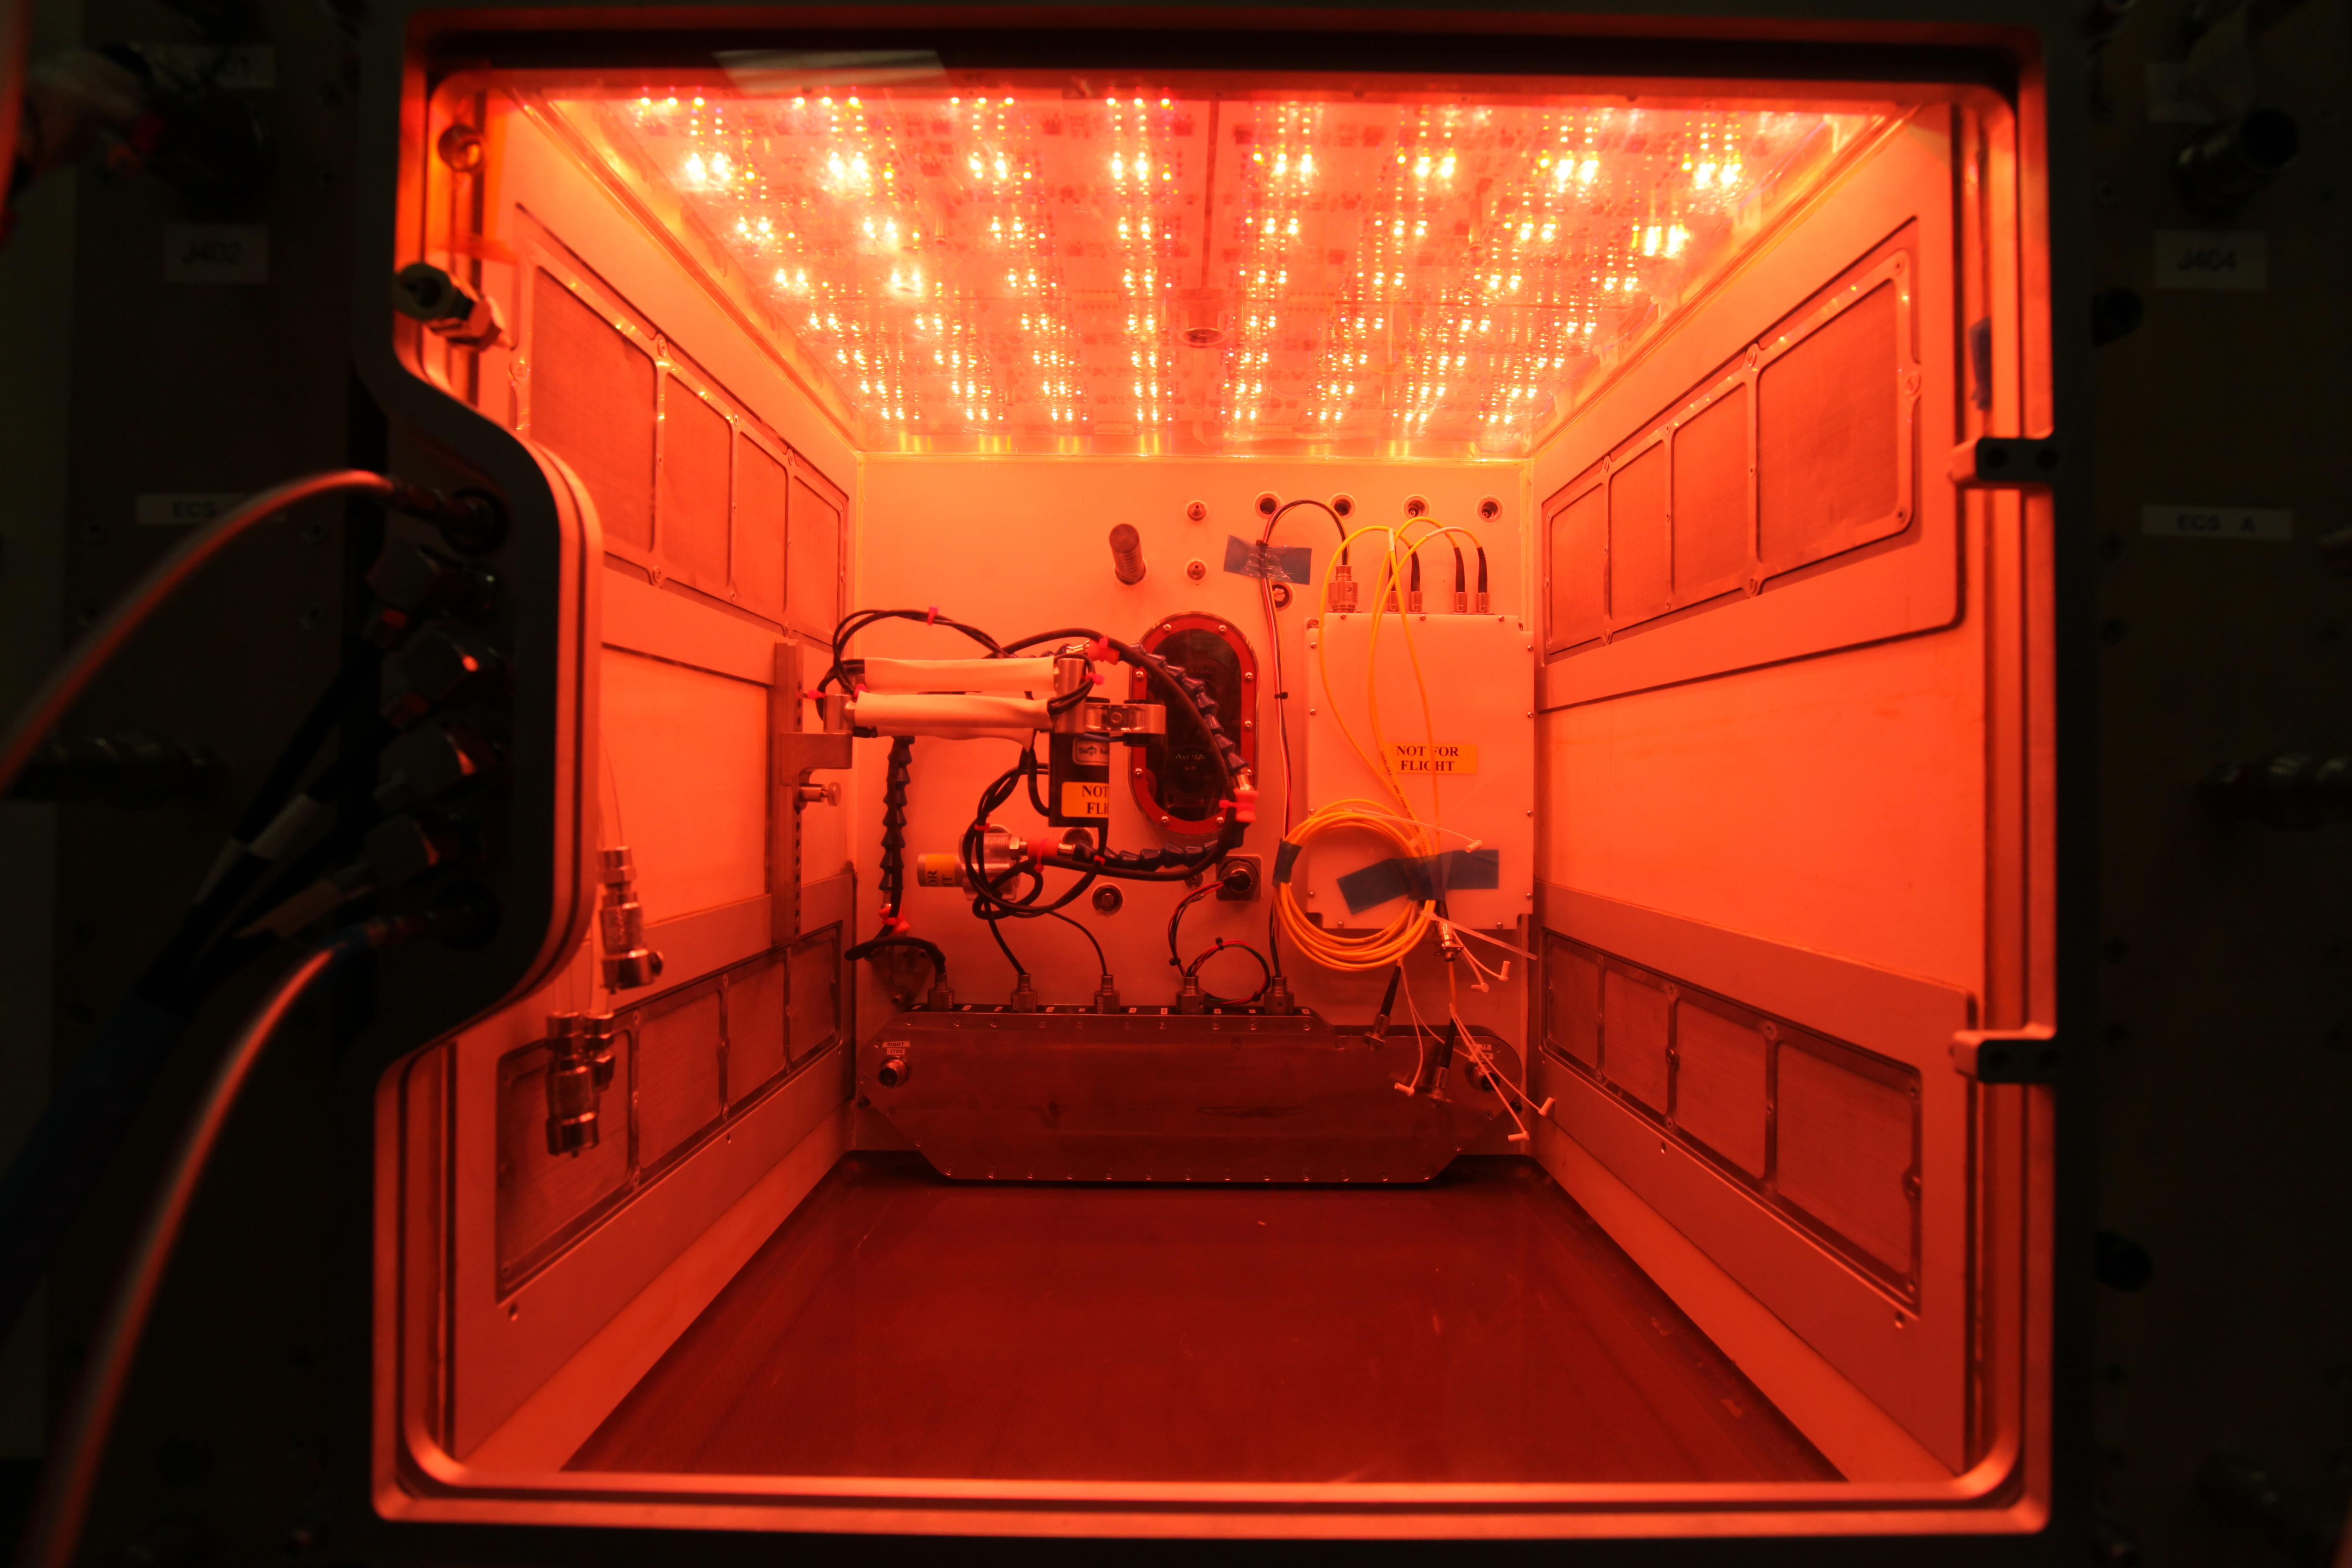 NASA Tests Its Largest Plant Chamber Prototype Ahead Of Space Station Delivery